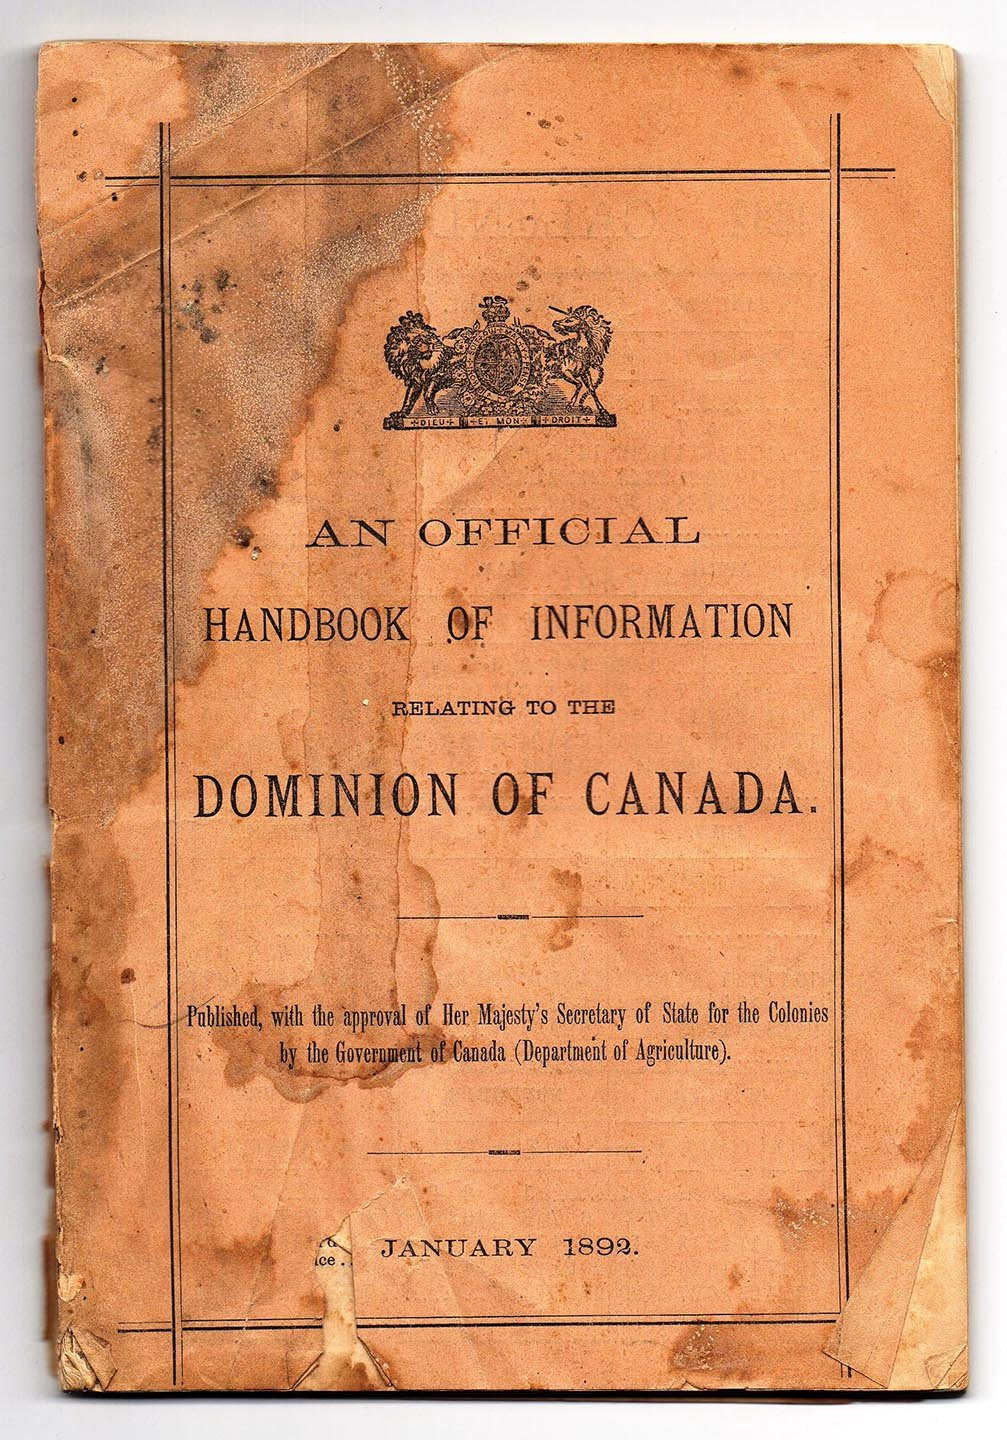 An Official Handbook of Information Relating to the Dominion of Canada